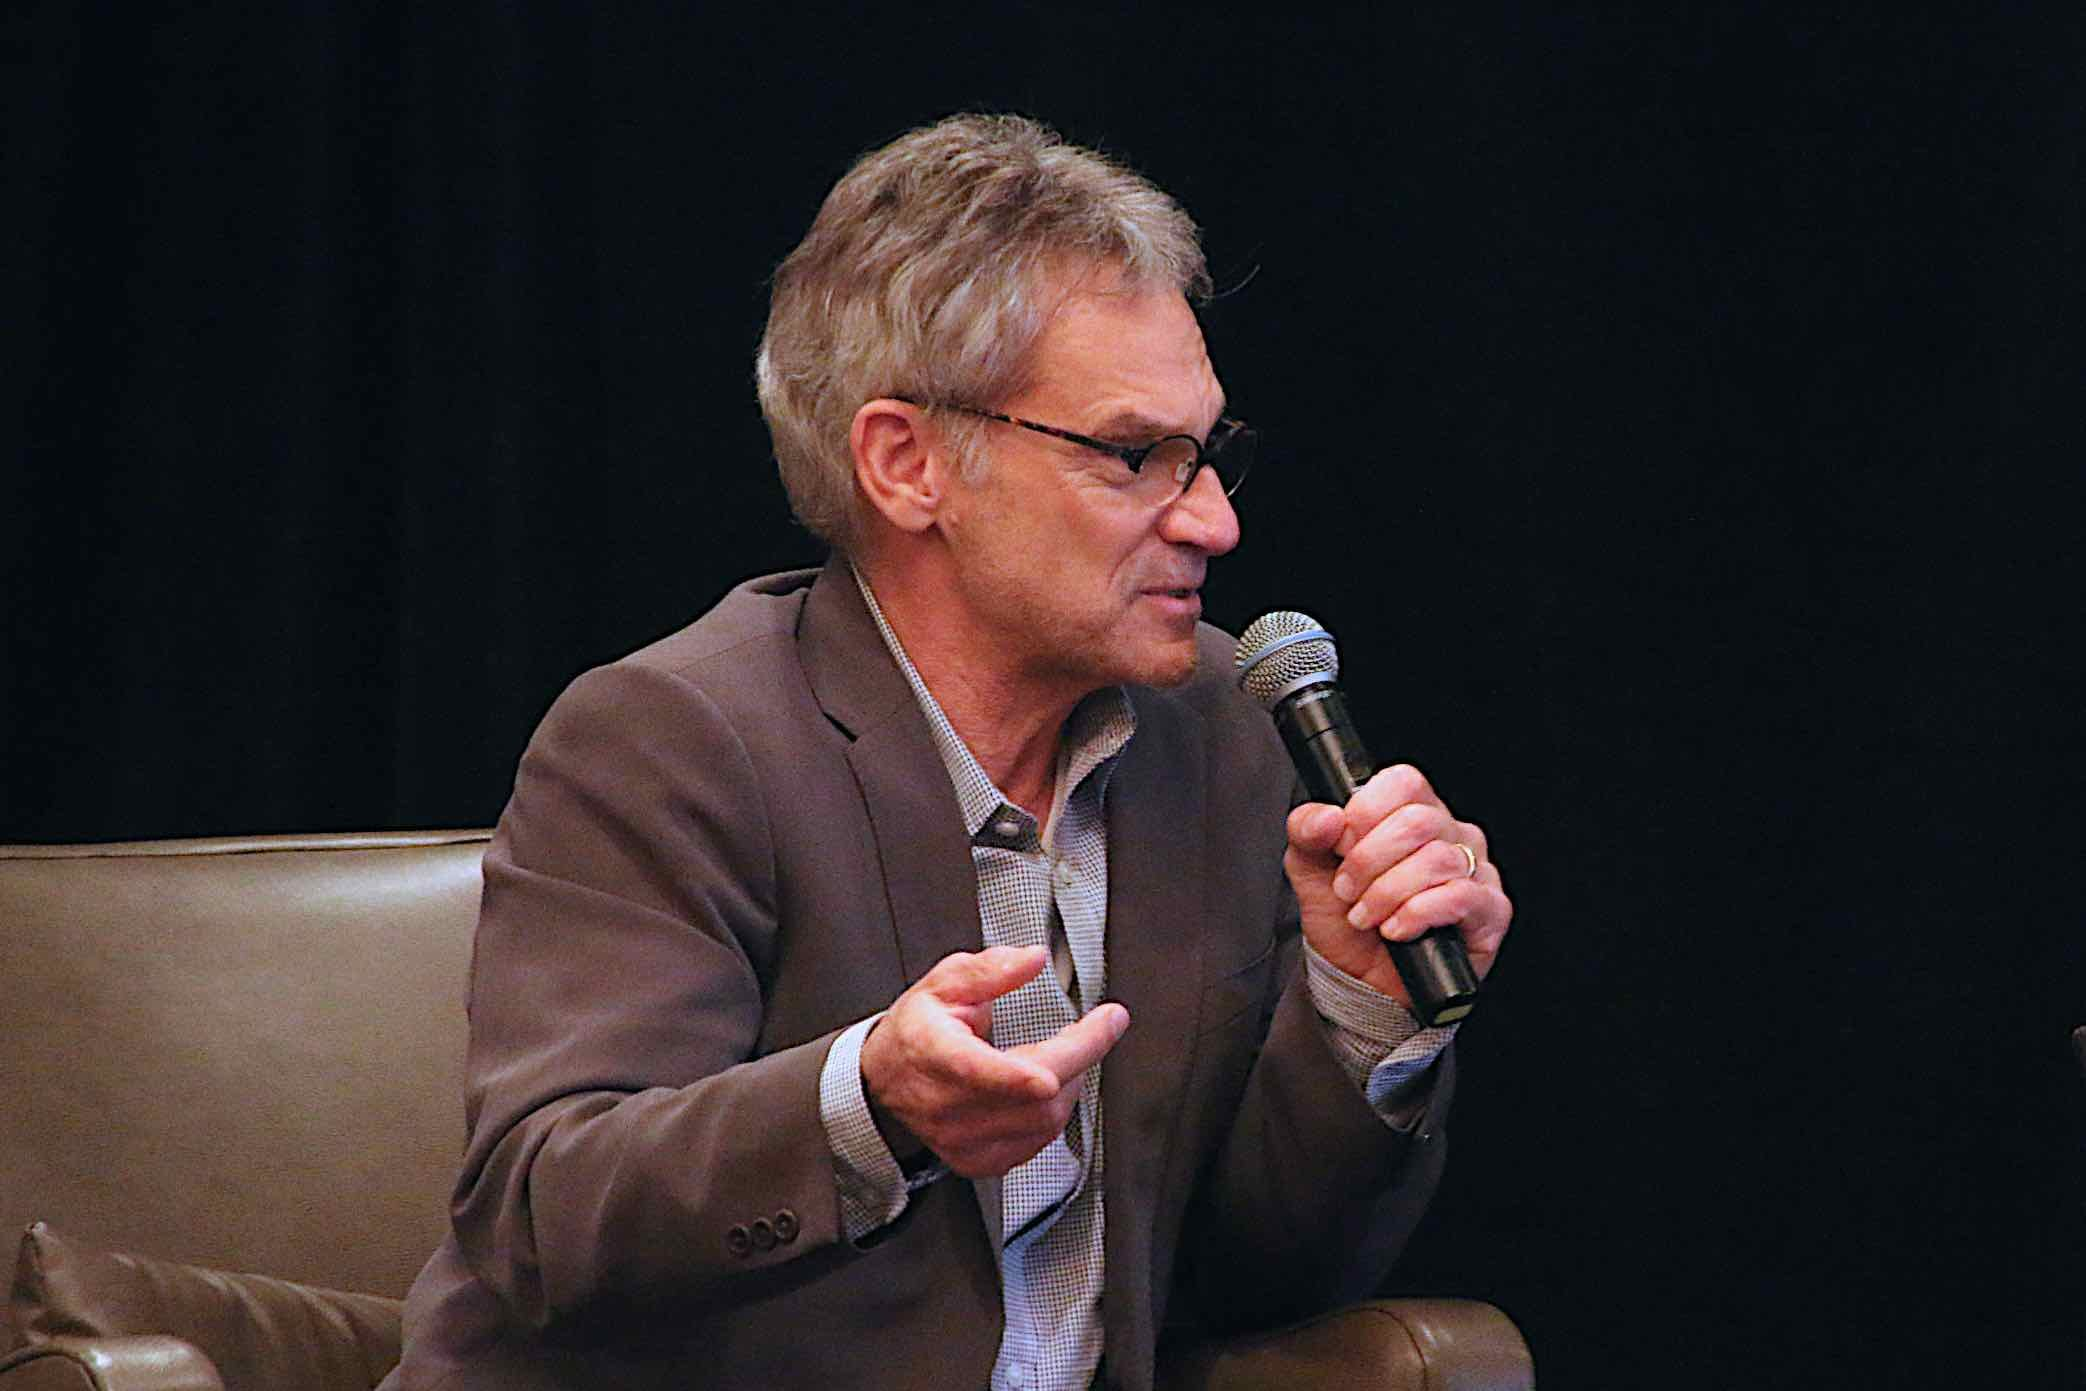 Jon Krakauer spoke in Missoula about his new book (MTN News photo)